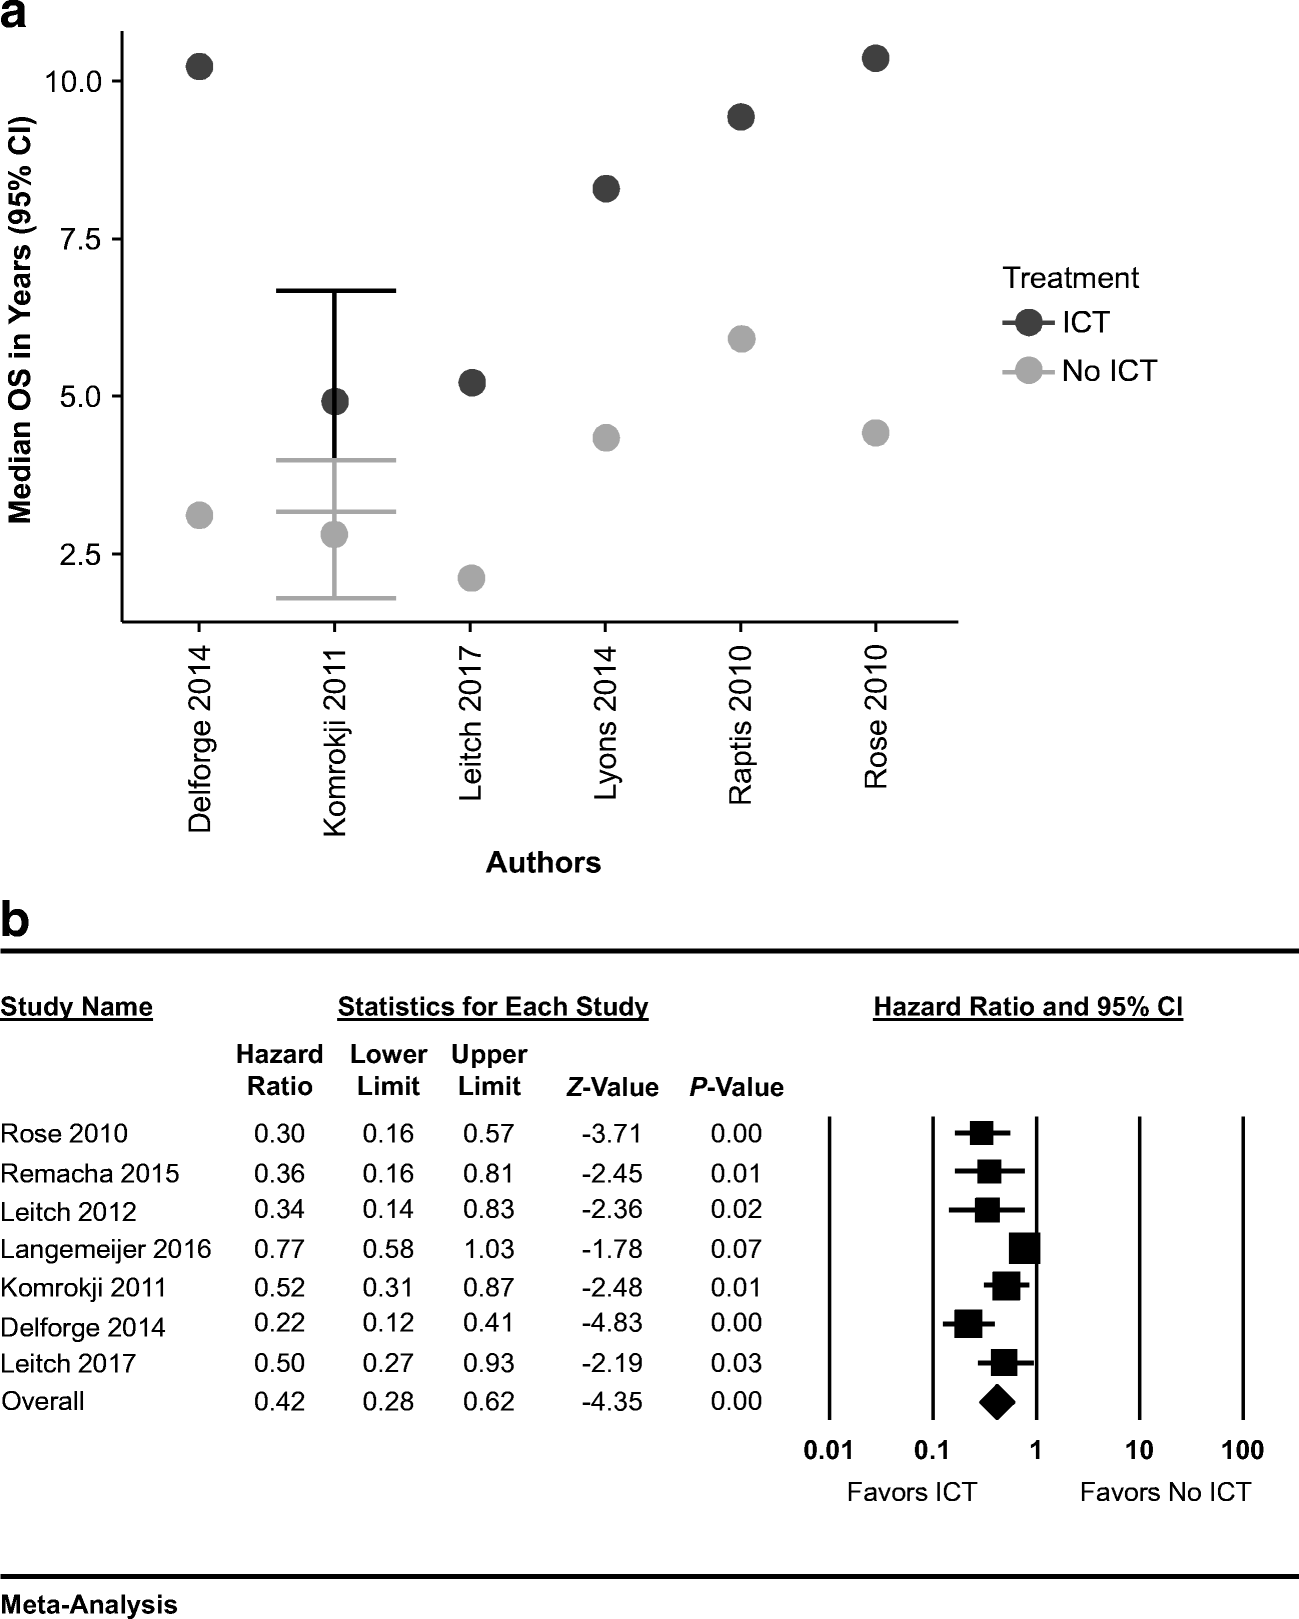 Systematic review and meta-analysis of the effect of iron chelation